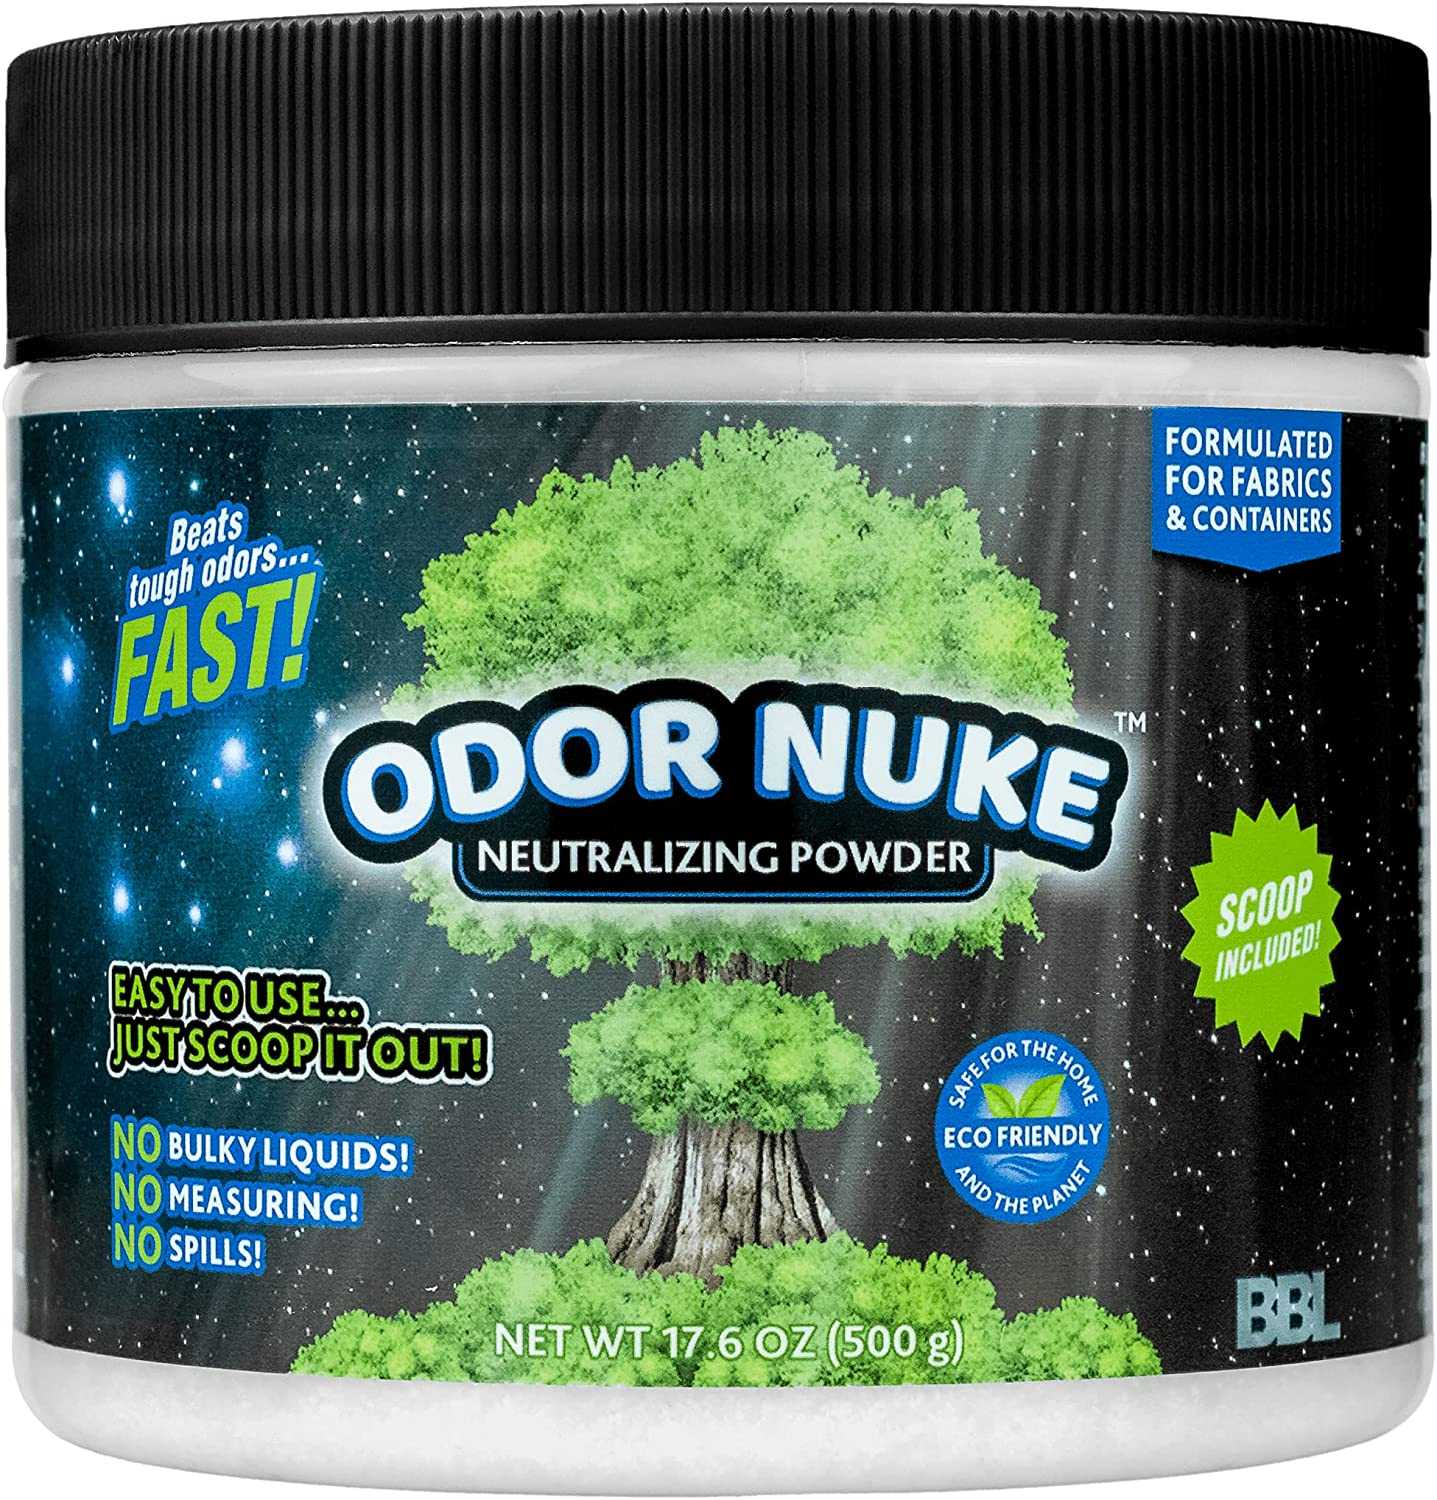 Selling rankings ODOR sold out NUKE Bedside Commode Deodorizer Powder - Odor Urine N Human